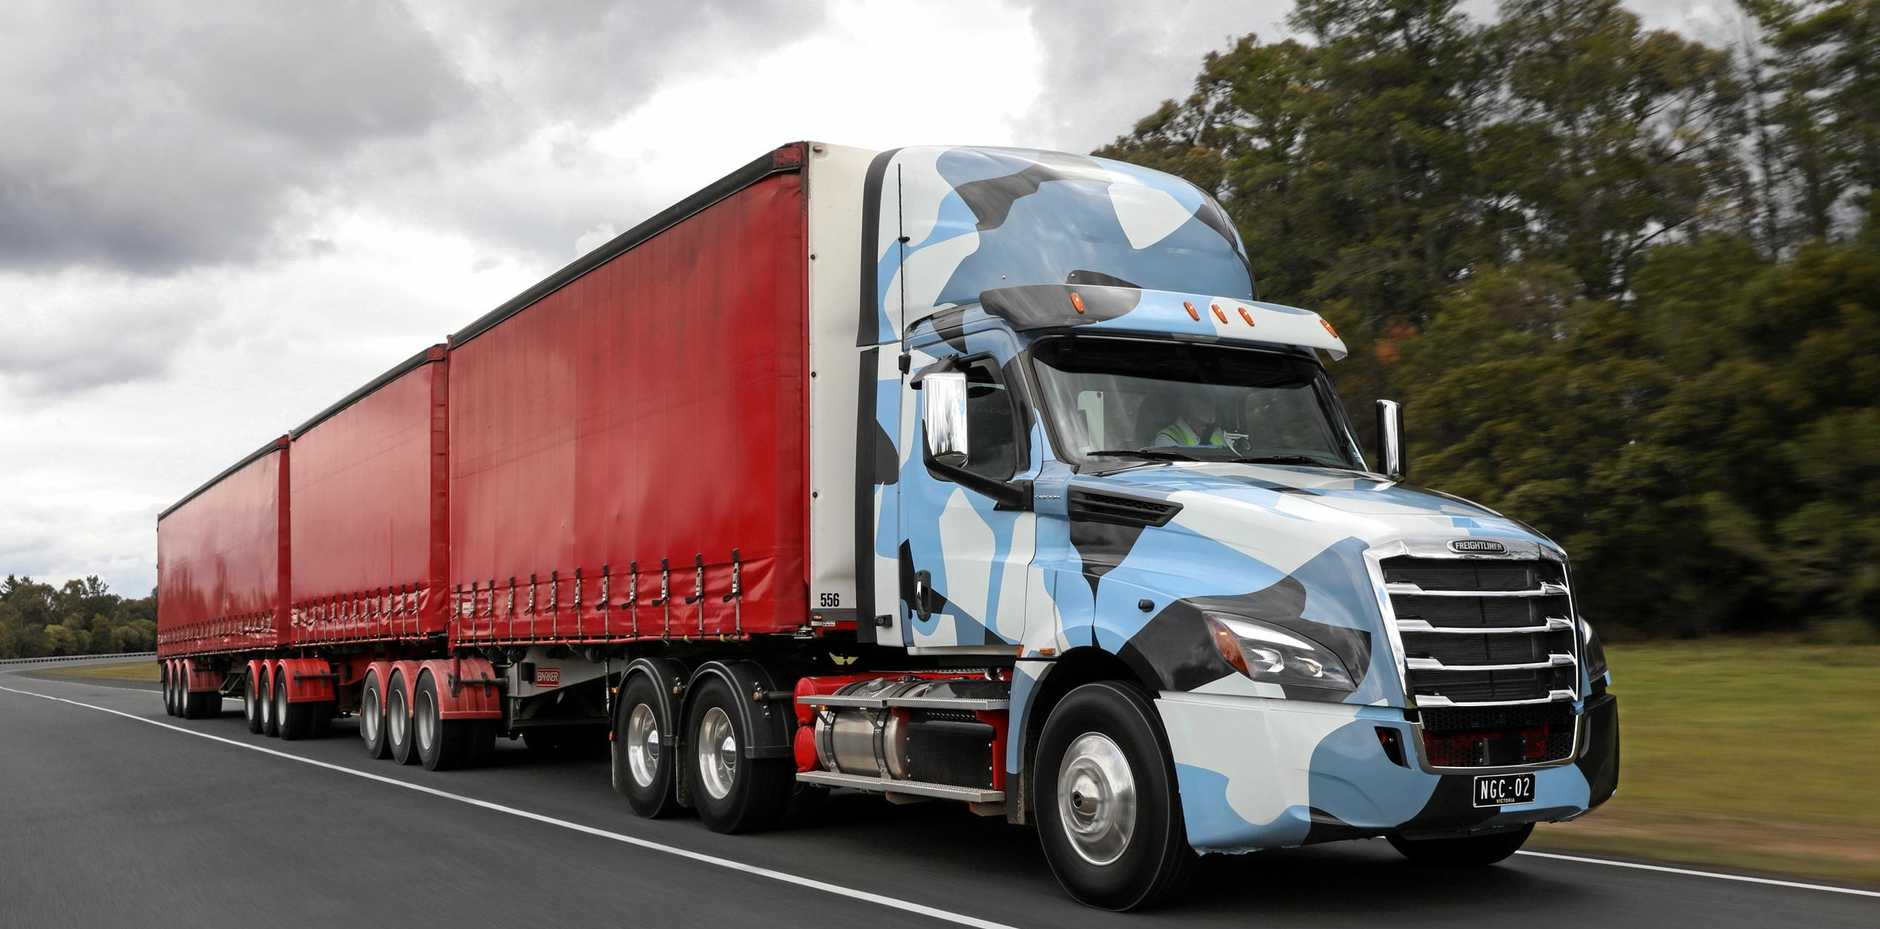 Freightliner will debut their eagerly anticipated Cascadia at the Big Boys Toys event